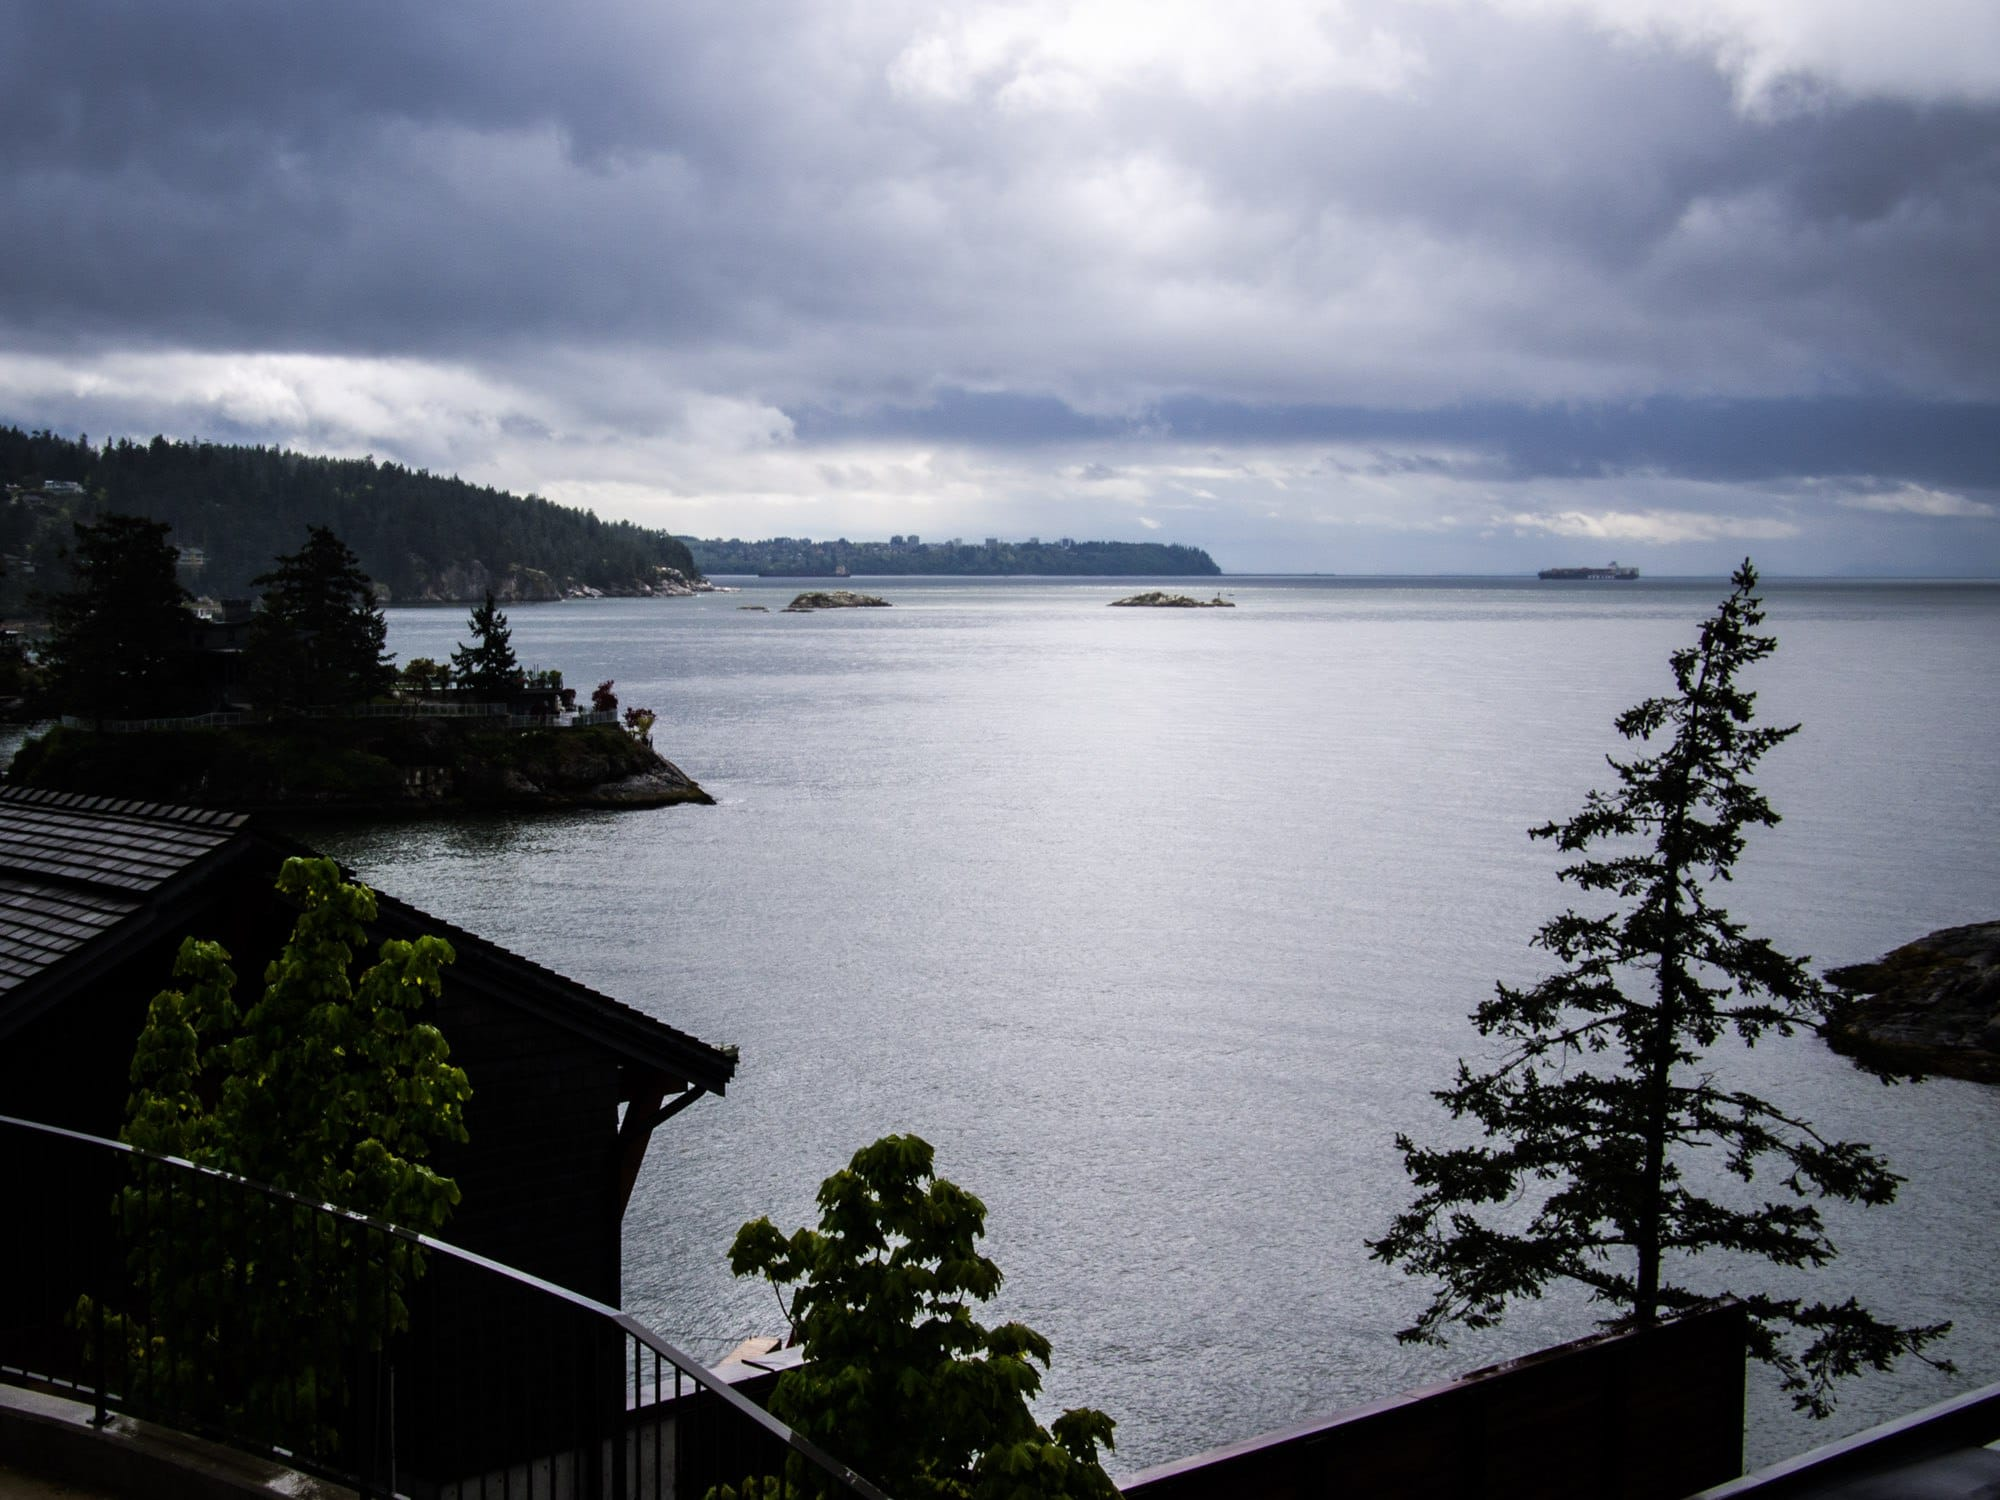 The view from a West Vancouver home.